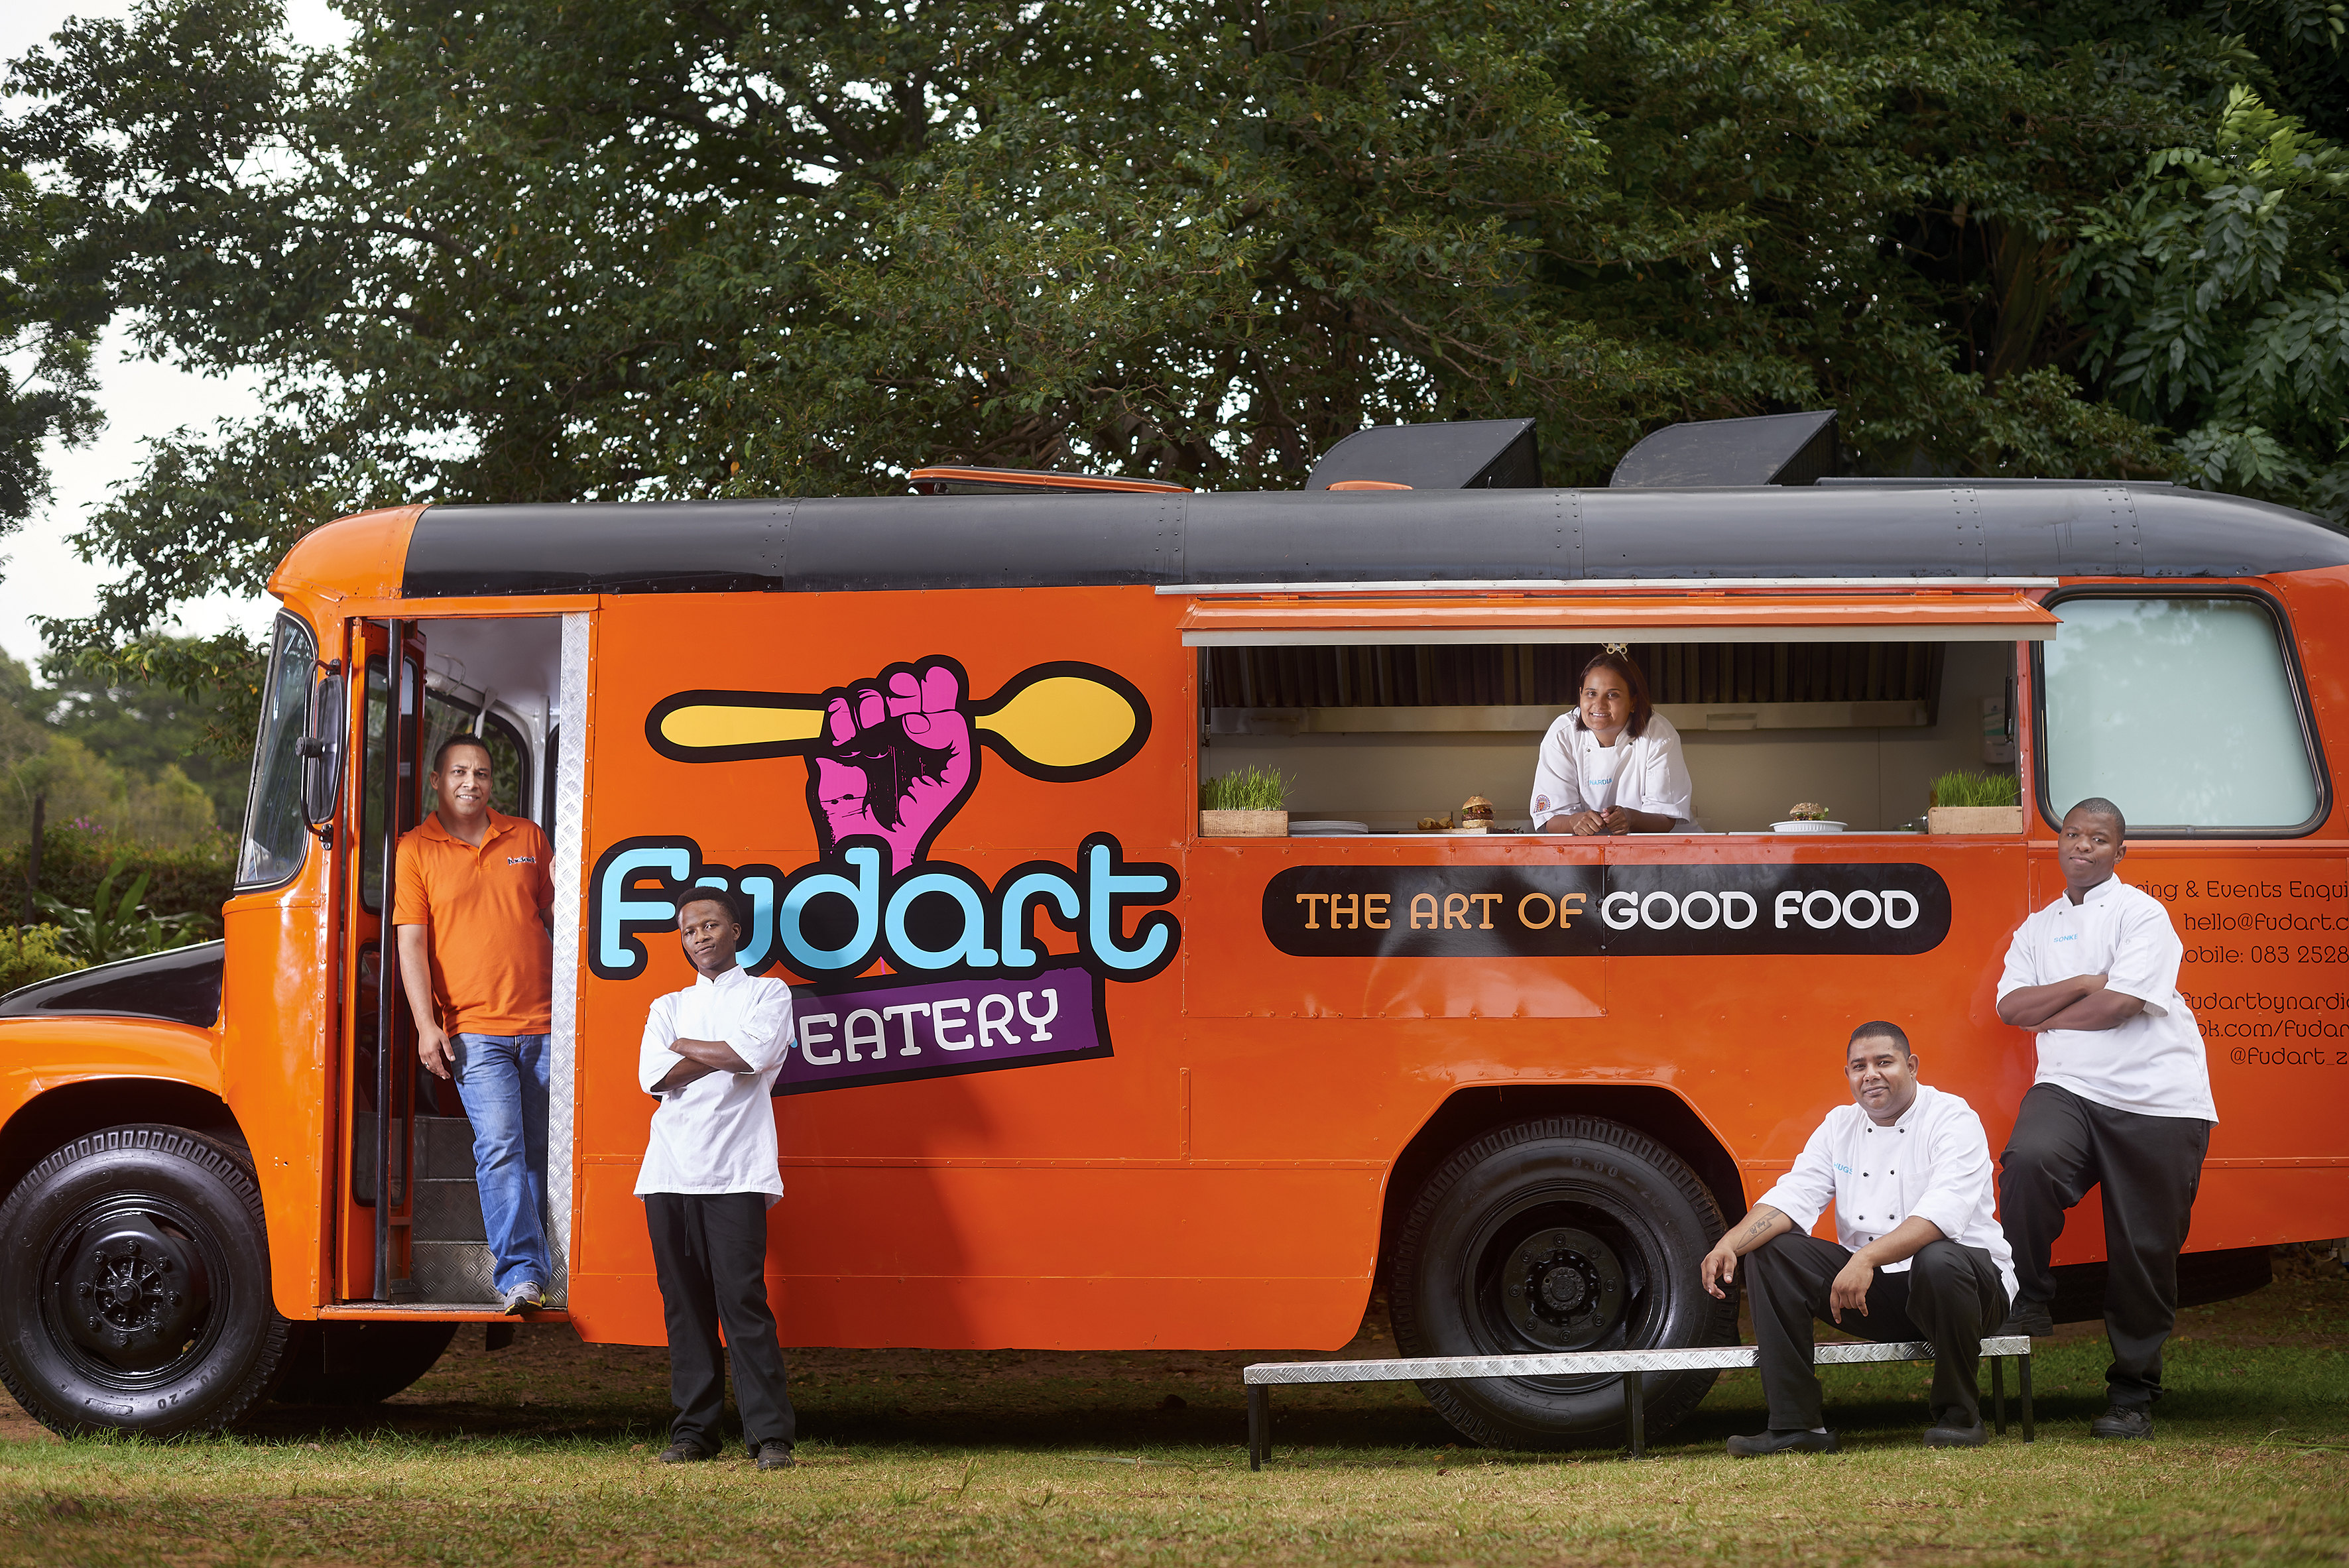 The team at FudArt STREATERY